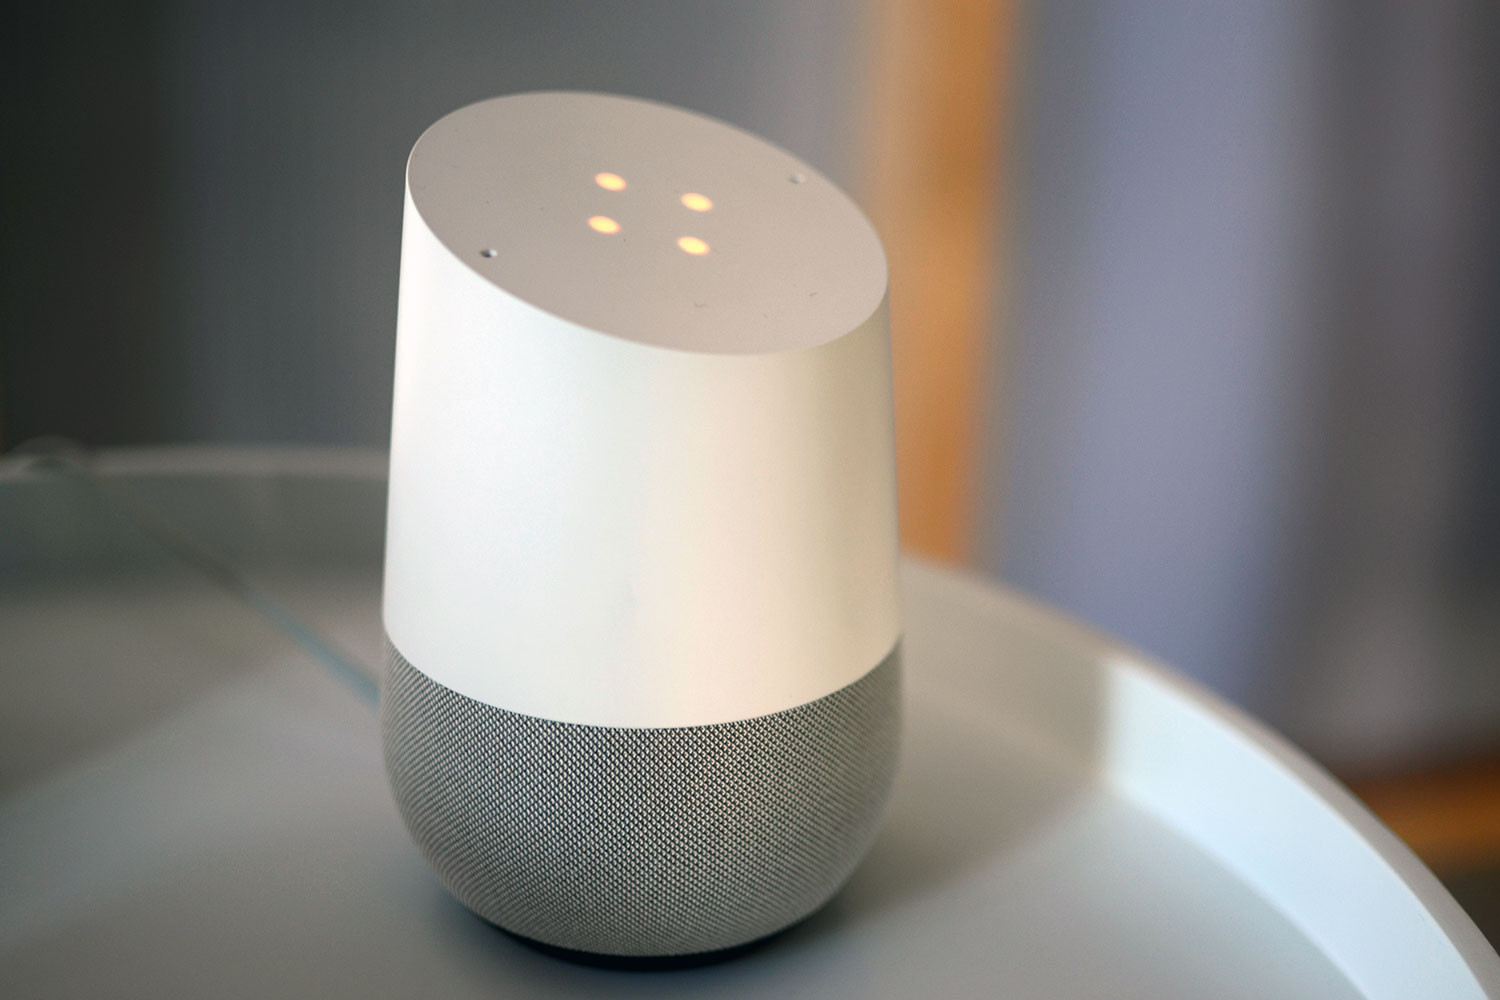 Every device that connects to Google Home